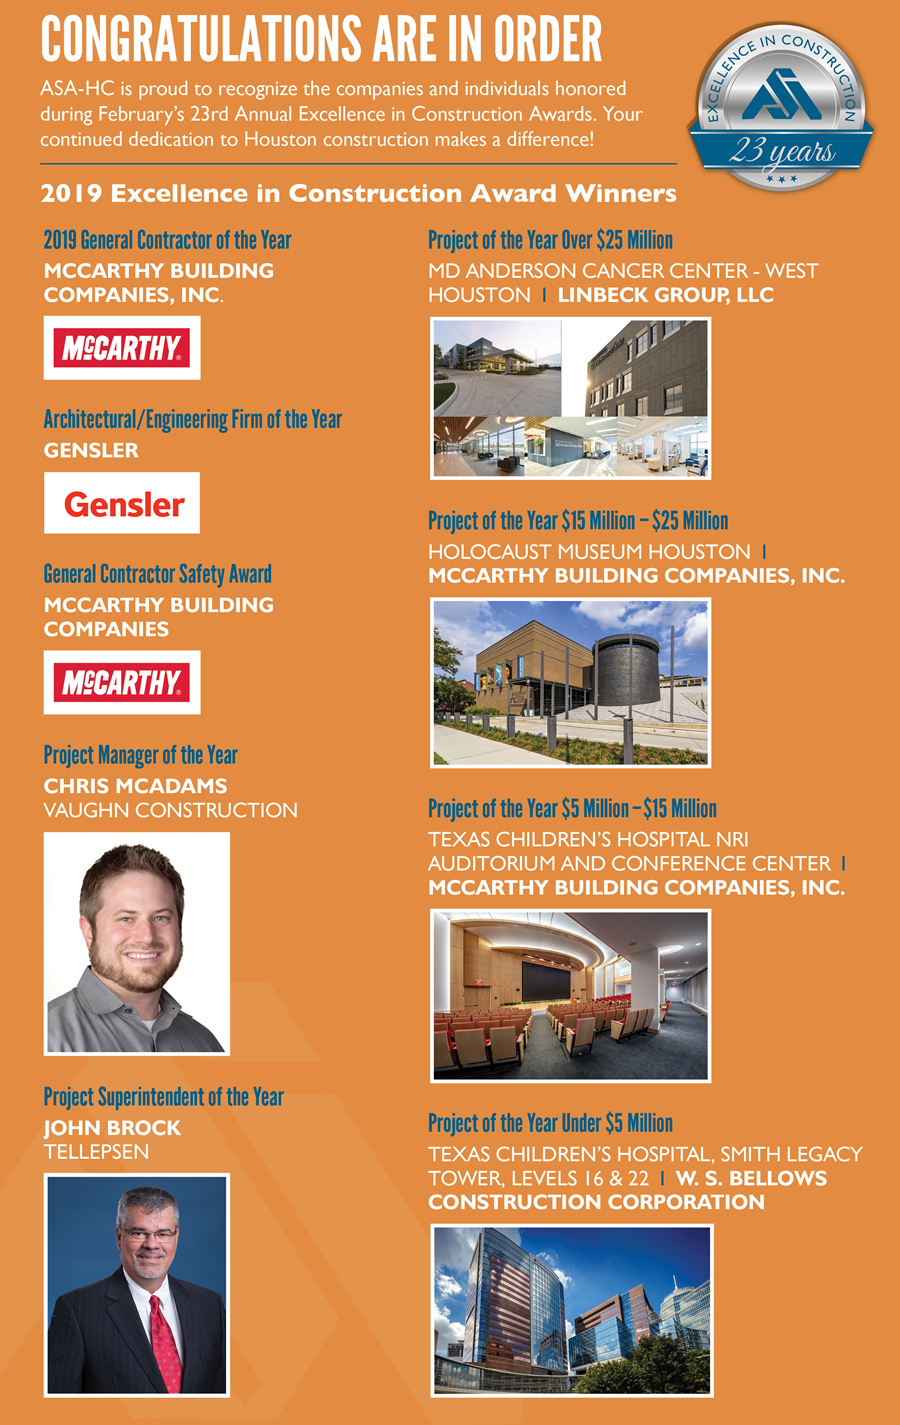 2019 Excellence in Construction Award Winners and Top Nominees